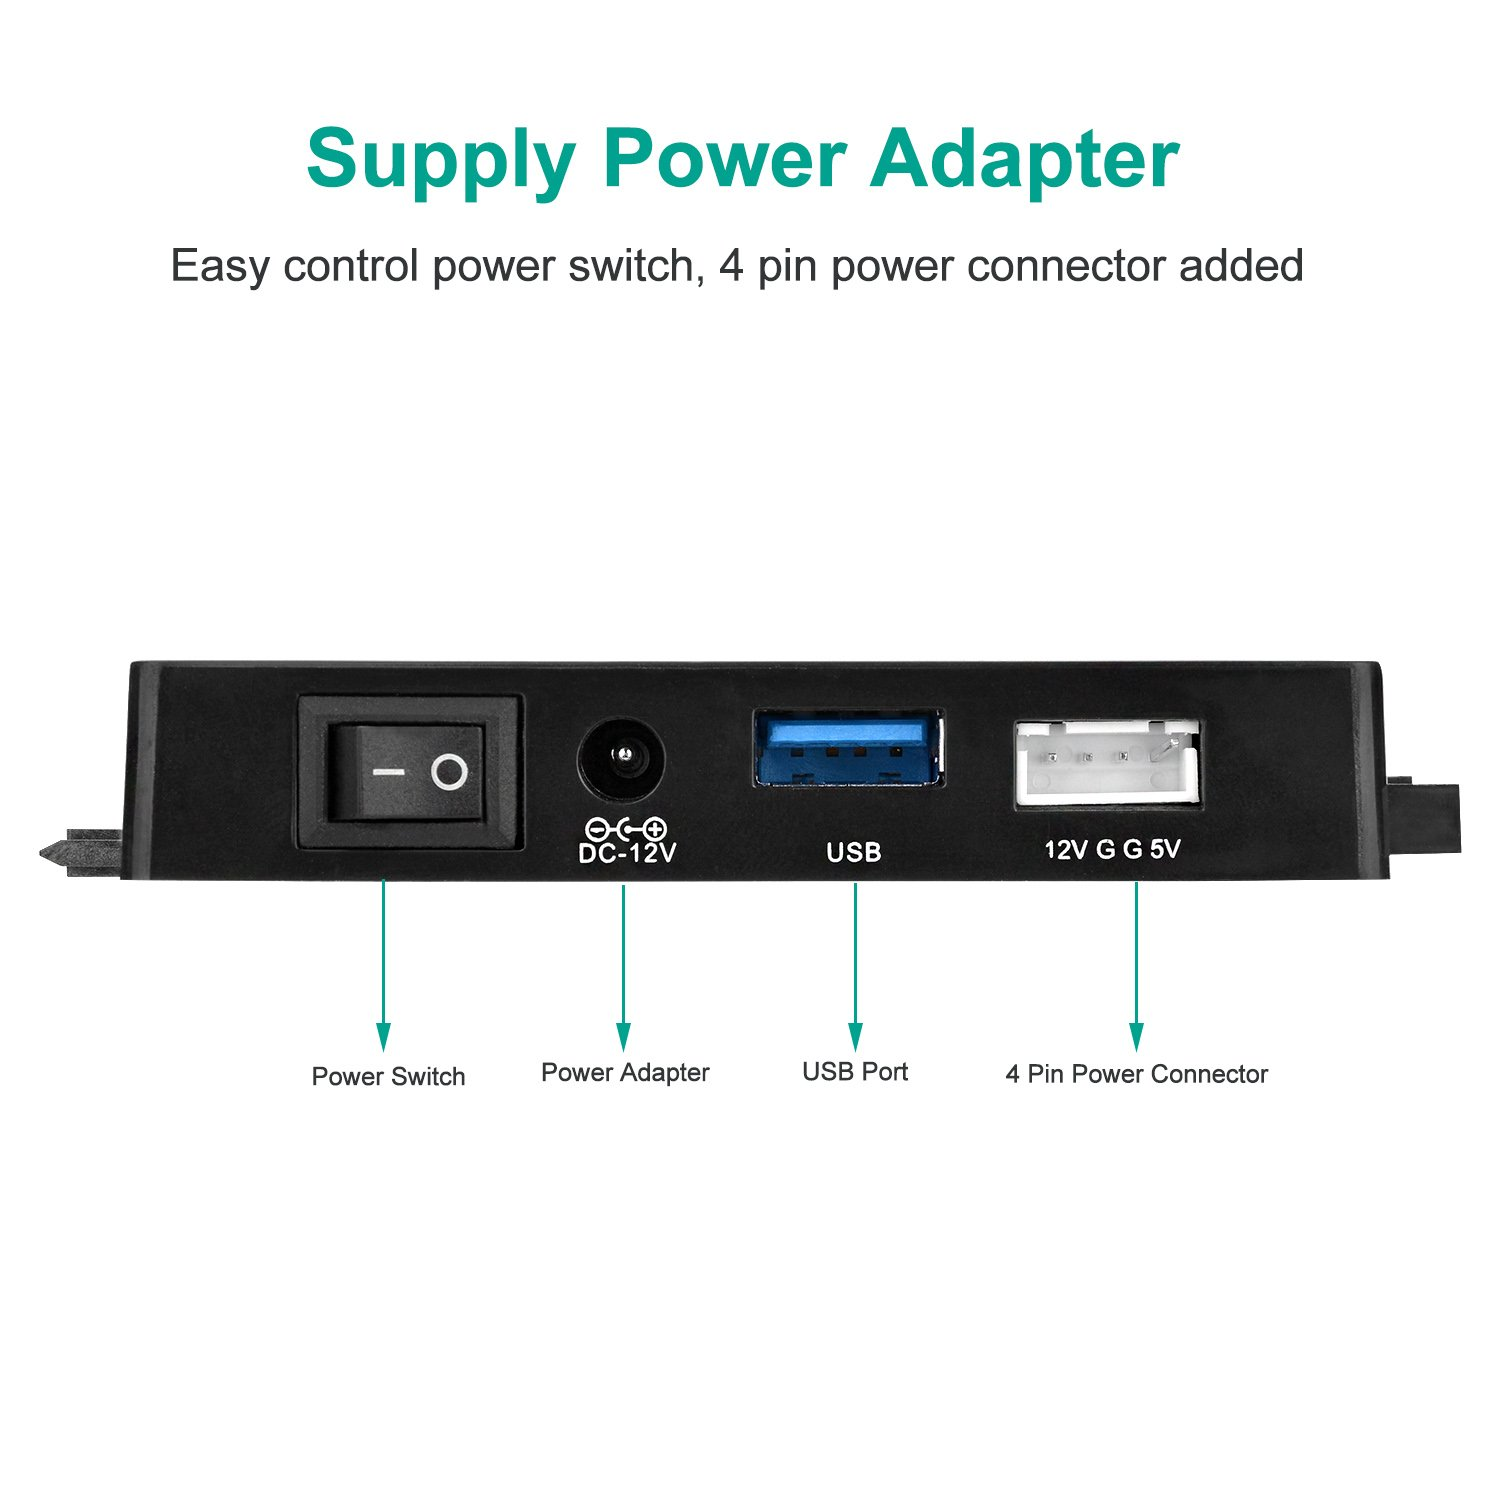 AGPtEK USB 3.0 to IDE/SATA Converter Adapter with Power Switch for 2.5''/3.5''SATA/IDE/SSD Hard Drive Disks, Support4TB, Include 12V 2APower Adapter & USB 3.0 Cable by AGPTEK (Image #4)